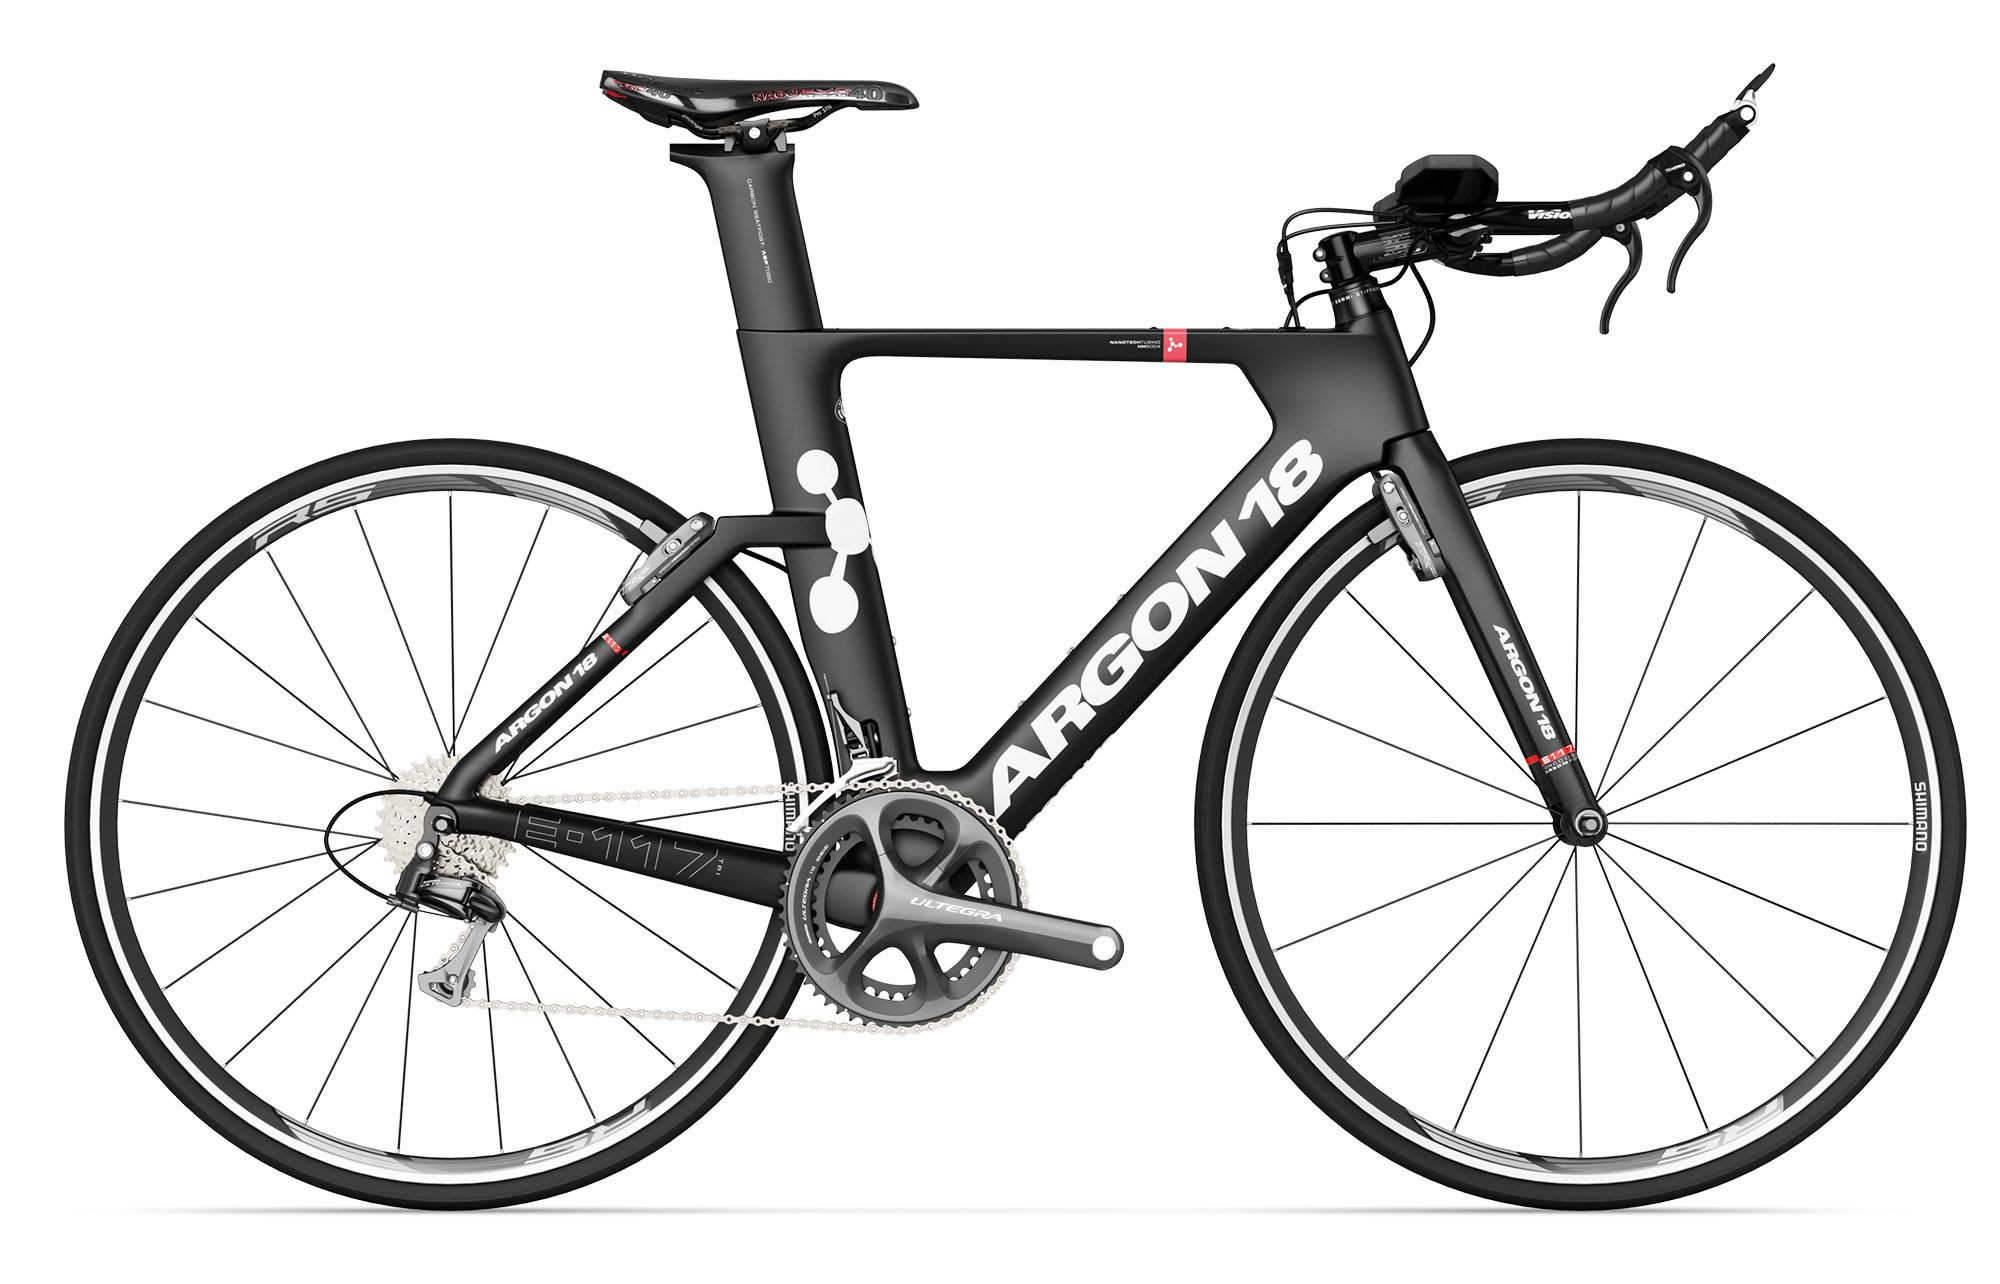 f2f2099ed40 2018 Argon 18 E-117 Tri Ultegra Bike | R&A Cycles